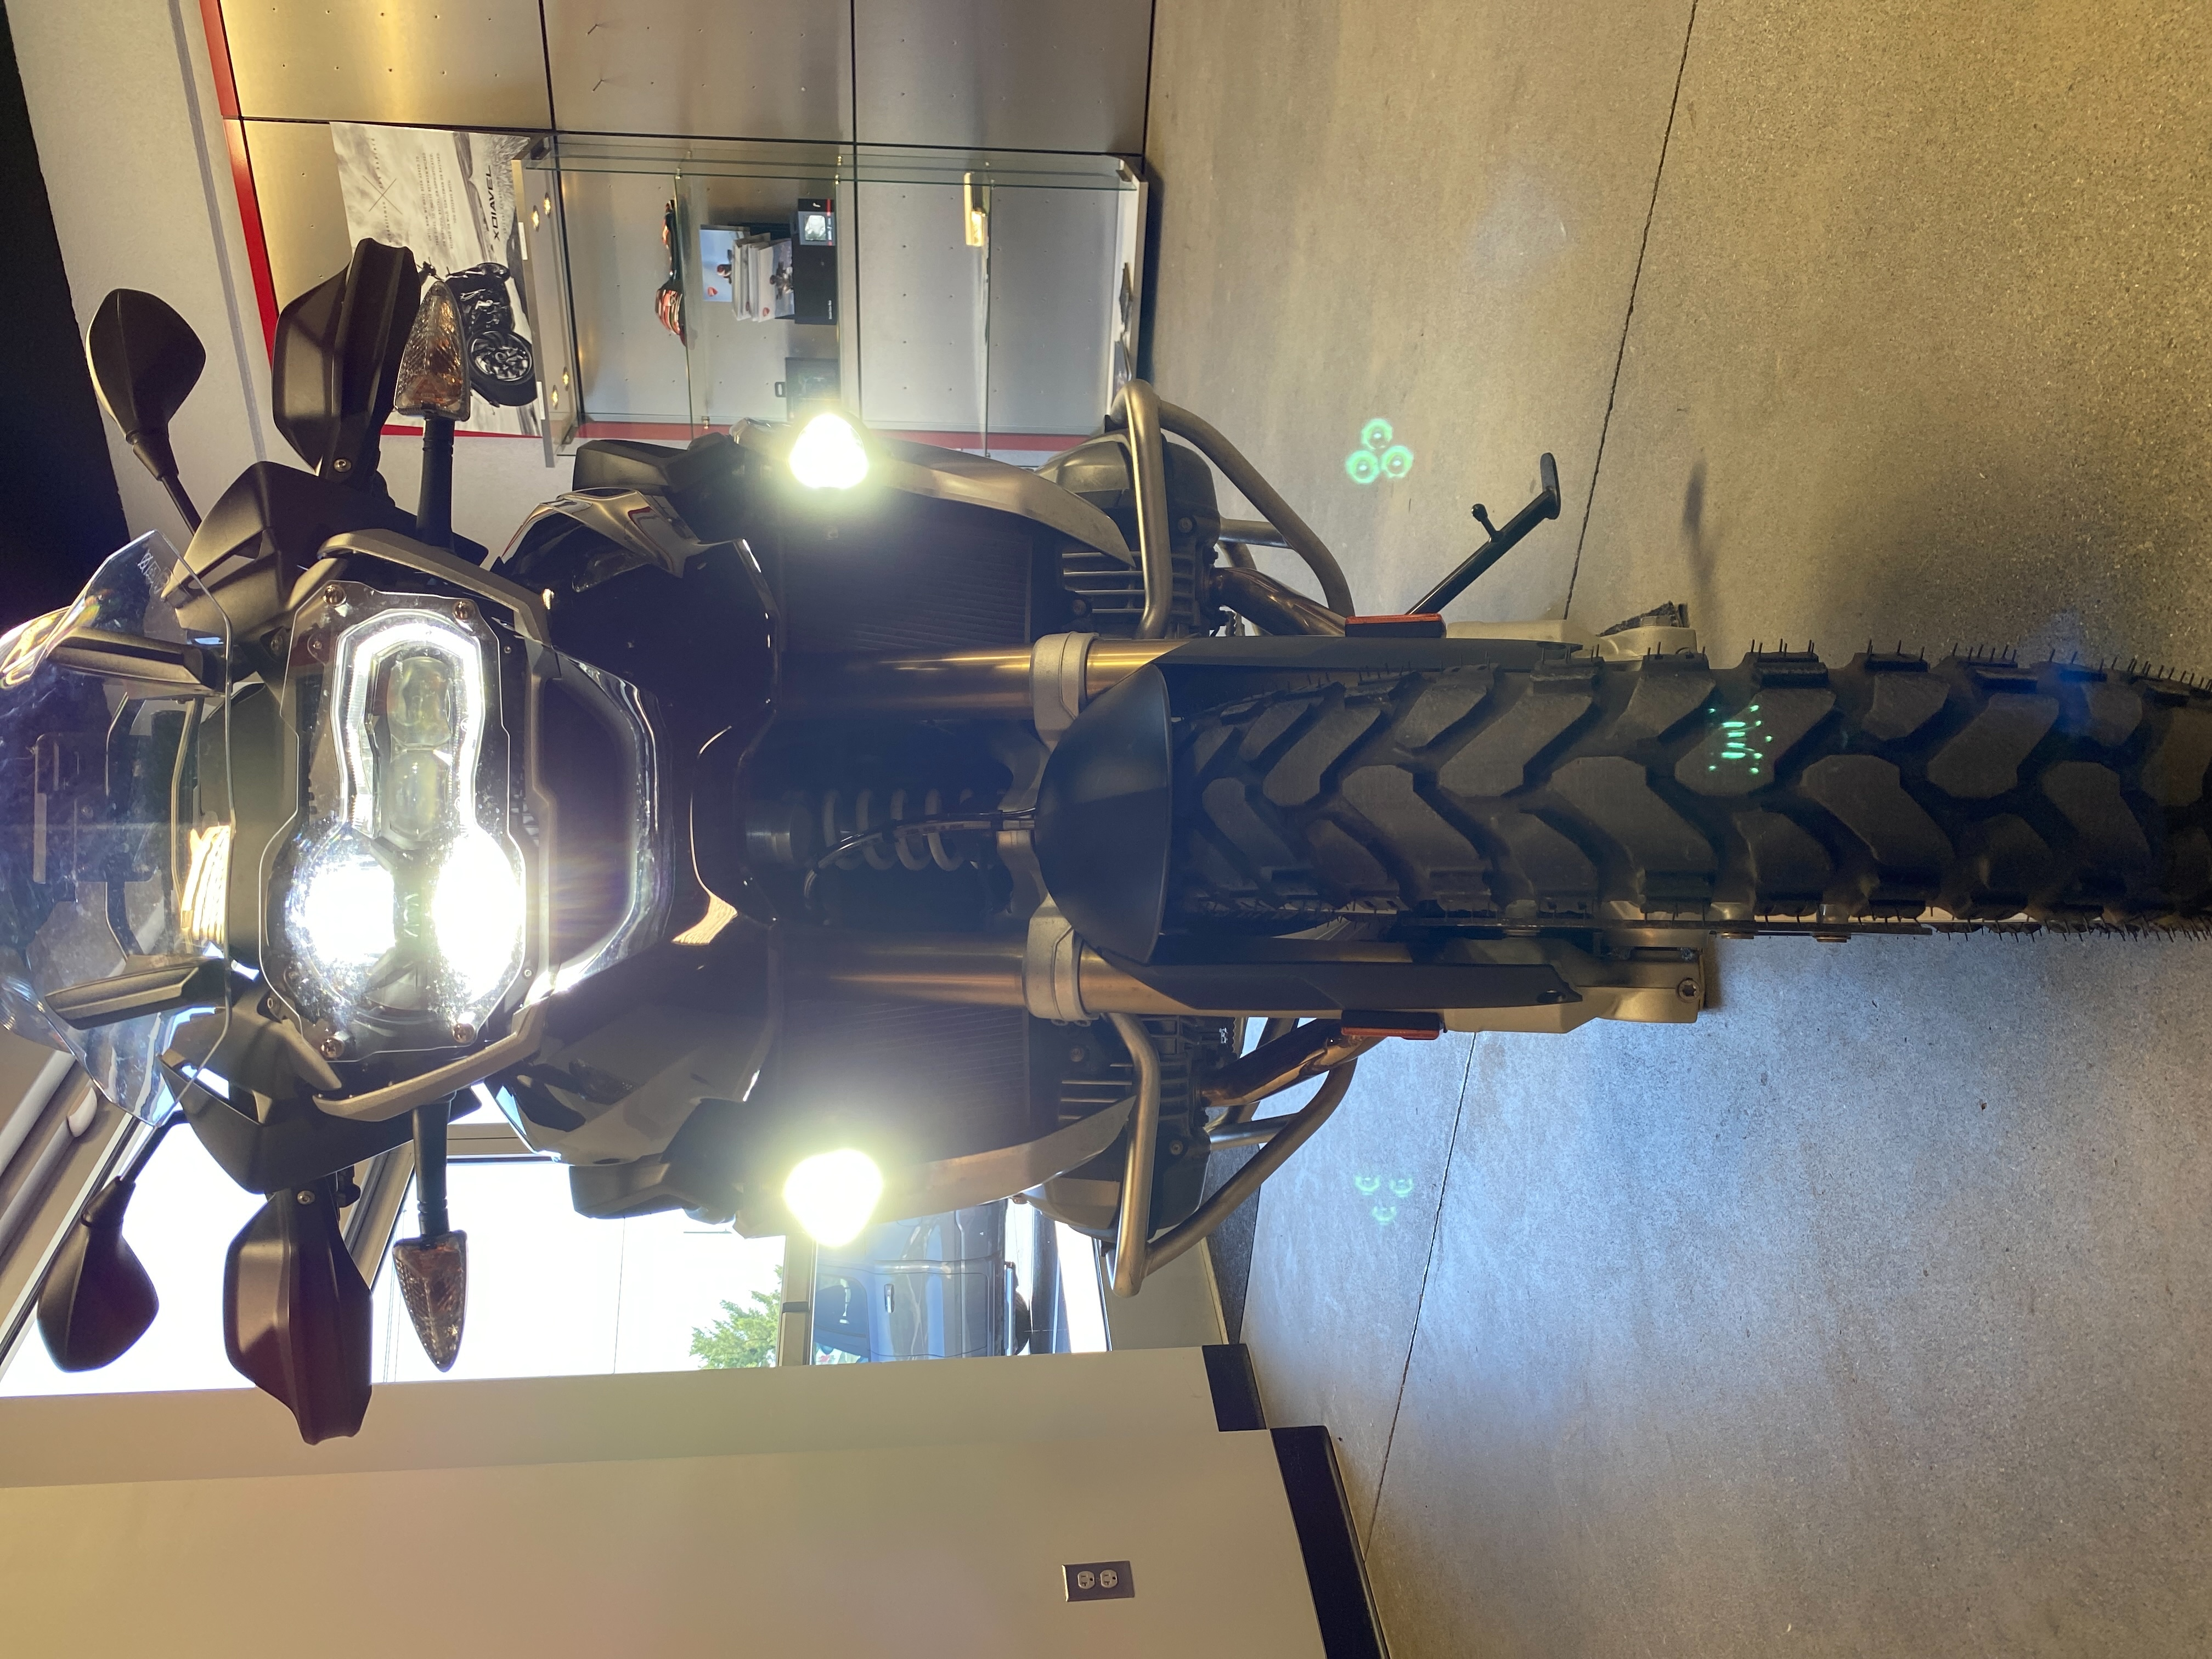 2018 BMW R 1200 GS 1200 GS at Frontline Eurosports